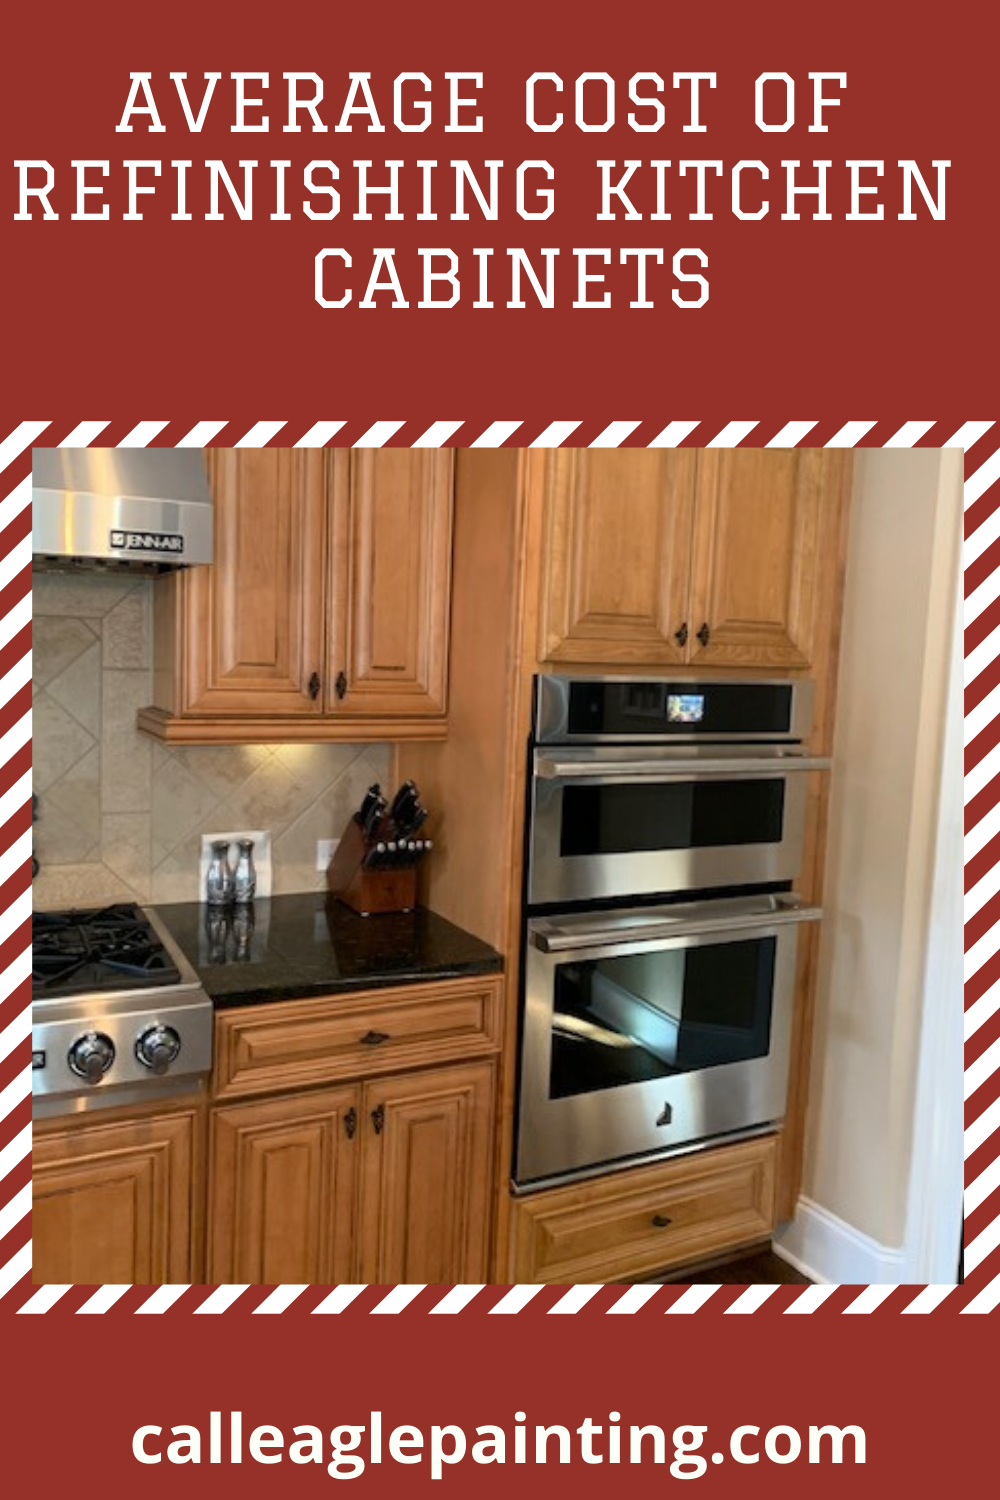 Average Cost Of Refinishing Cabinets In 2020 Refinishing Cabinets Update Kitchen Cabinets Kitchen Cabinets